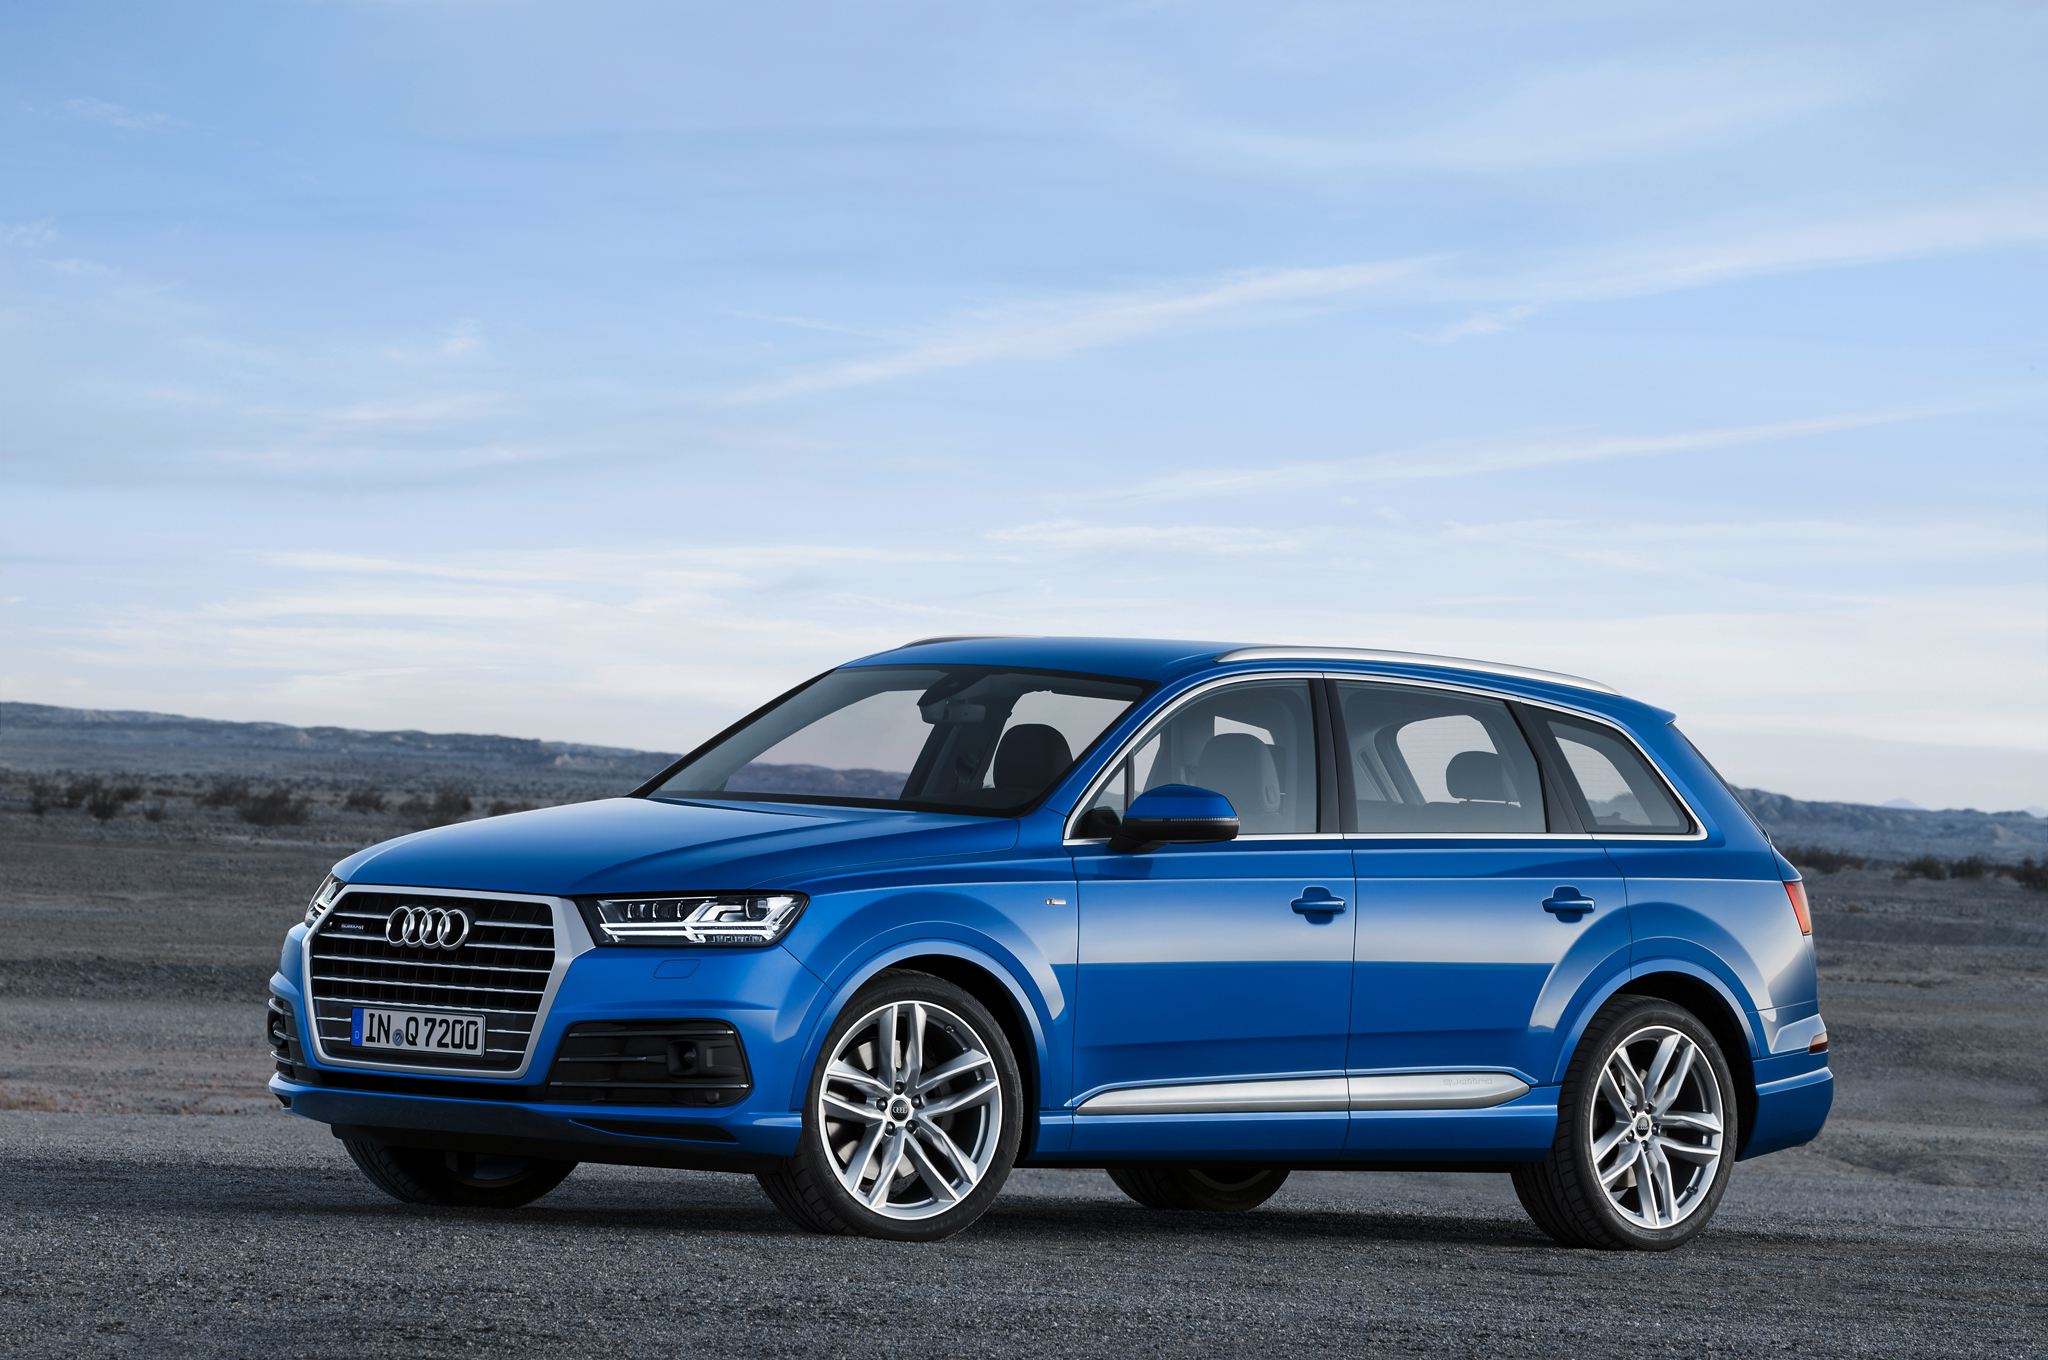 2016 Audi Q7 Front Side View (View 8 of 8)